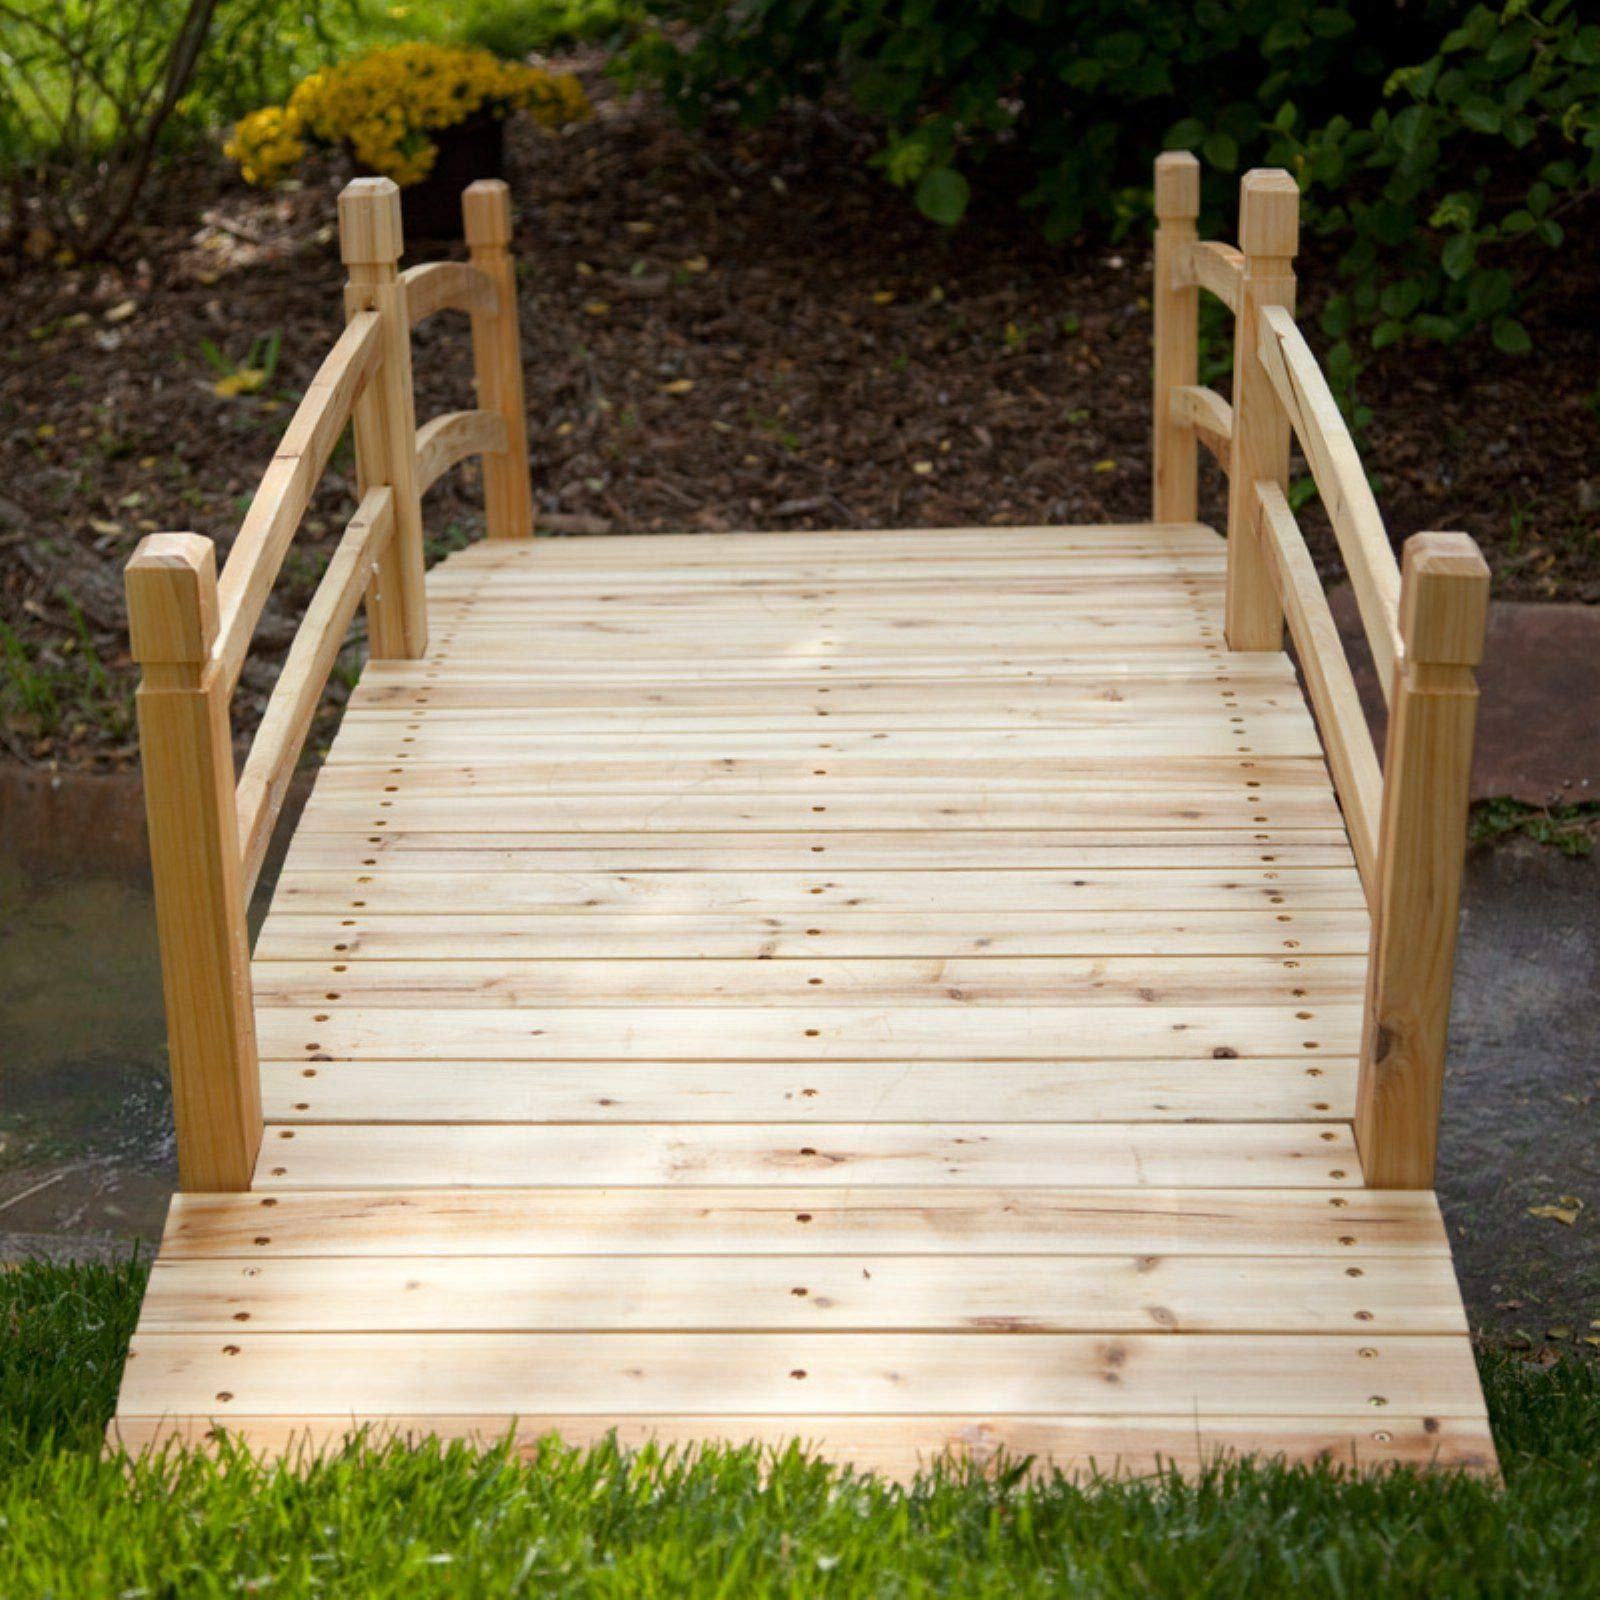 Home Improvements Natural Finish Wood 8 Foot Garden Bridge Outdoor Yard Lawn Landscaping Decor by Home Improvements (Image #4)